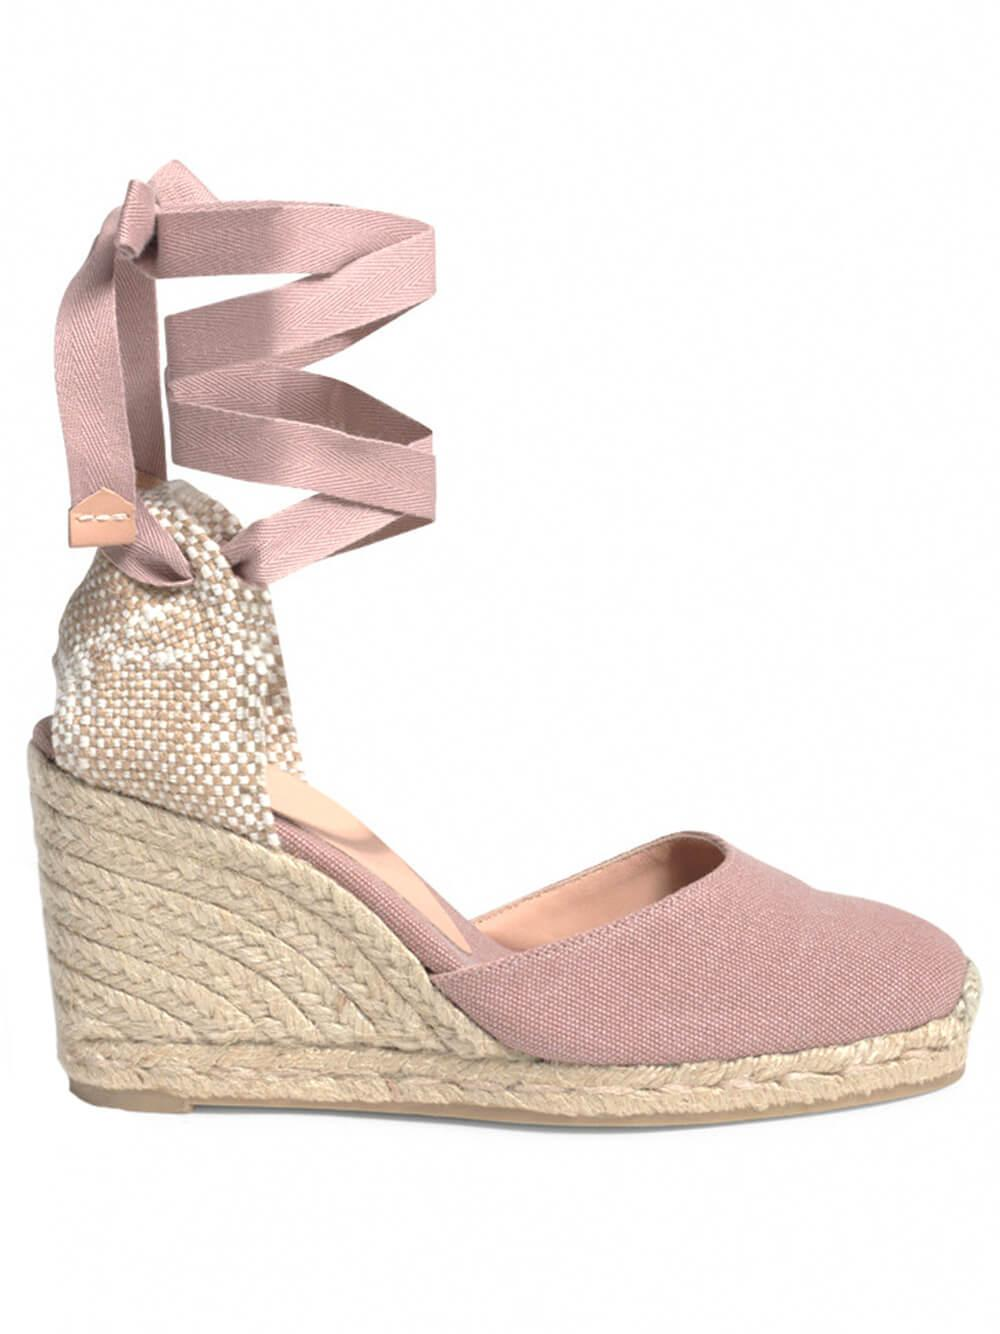 Carina Canvas Wedge